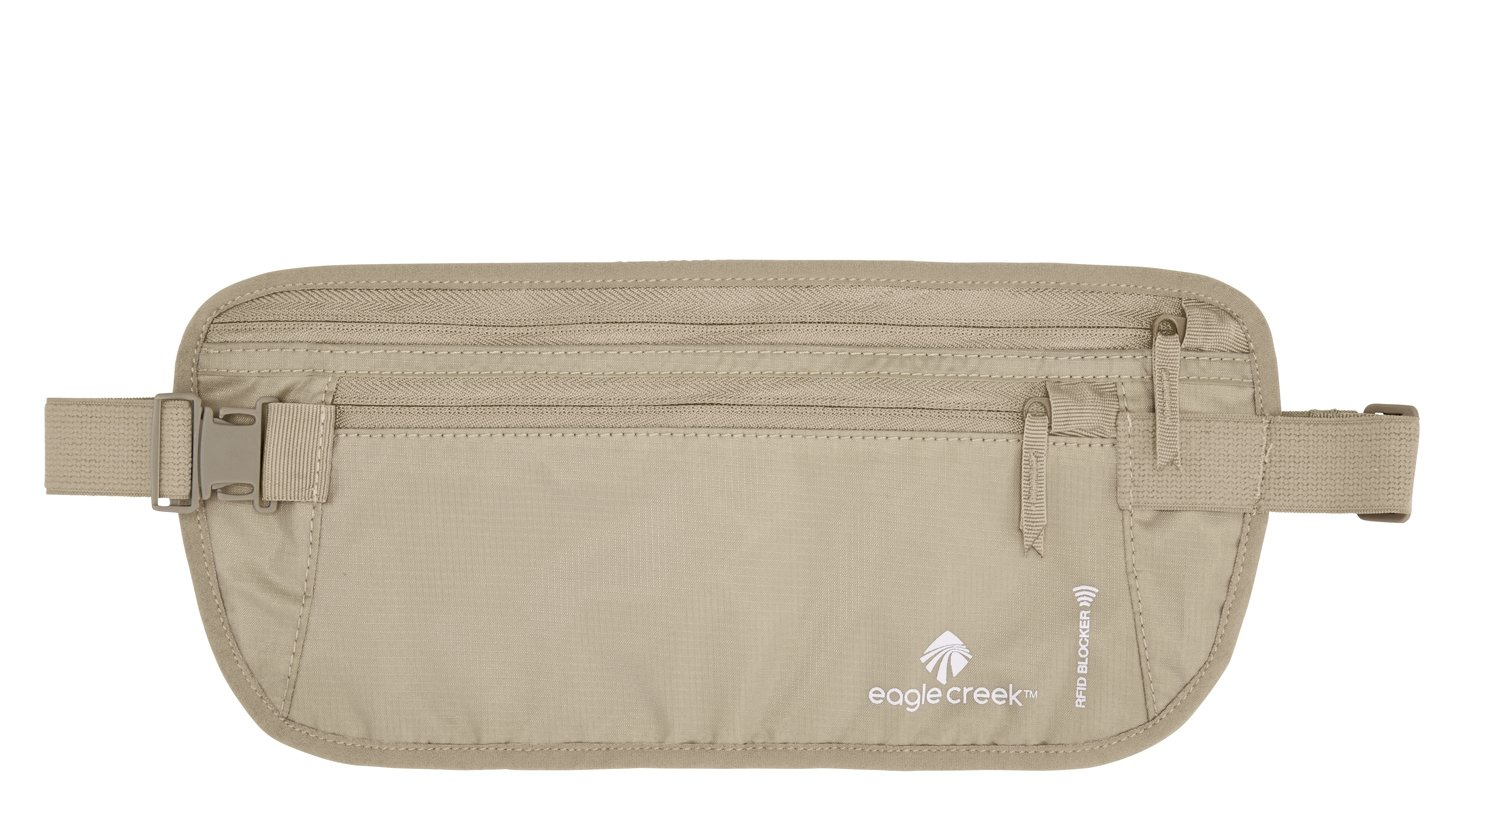 Eagle Creek Travel Gear Luggage RFID Blocker Money Belt DLX, Tan by Eagle Creek